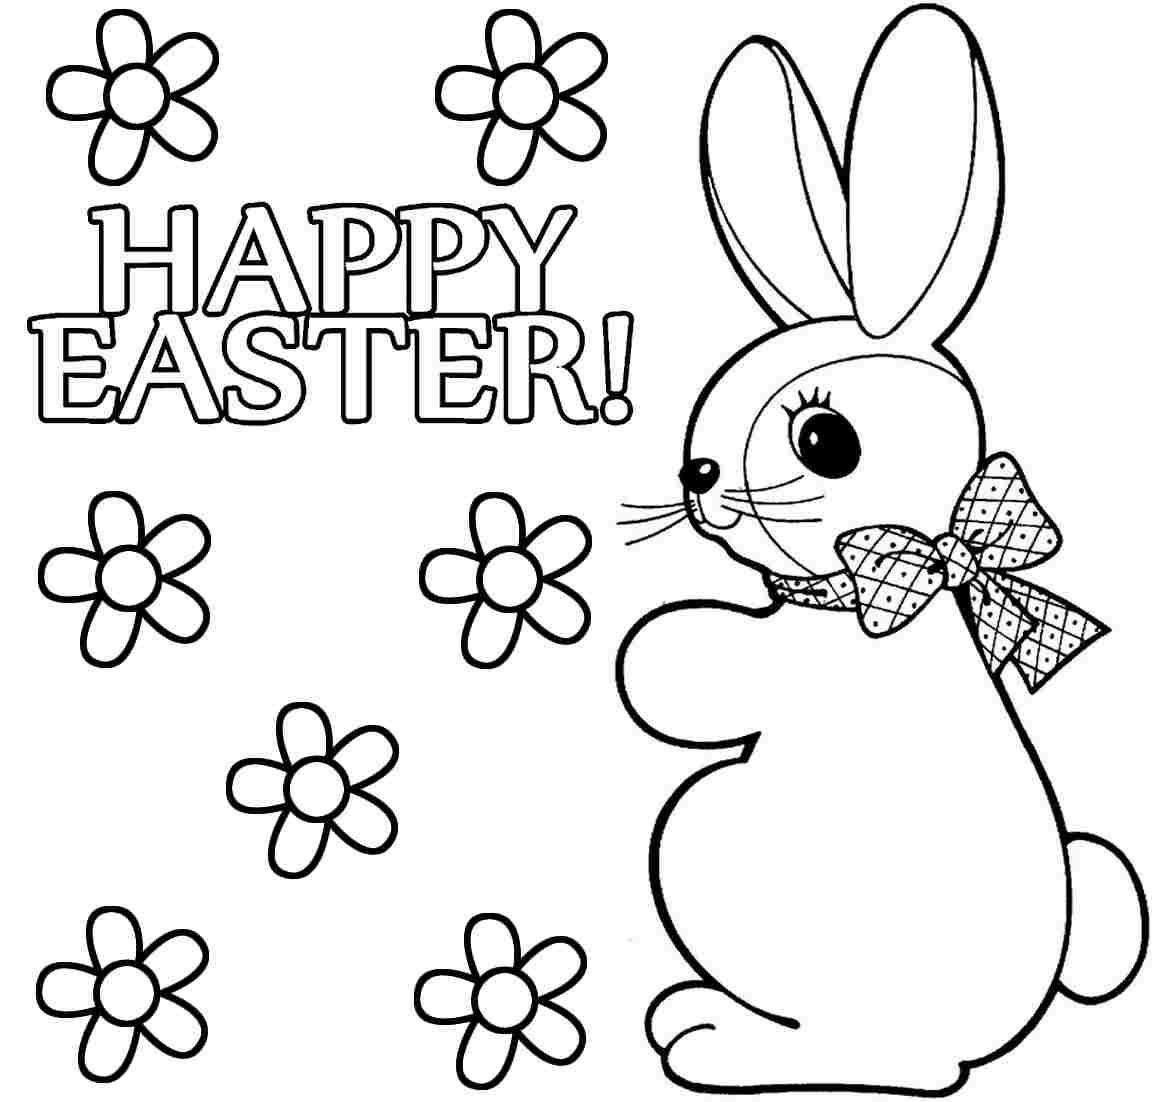 1152x1102 Happy Easter Coloring Pages Images Removable